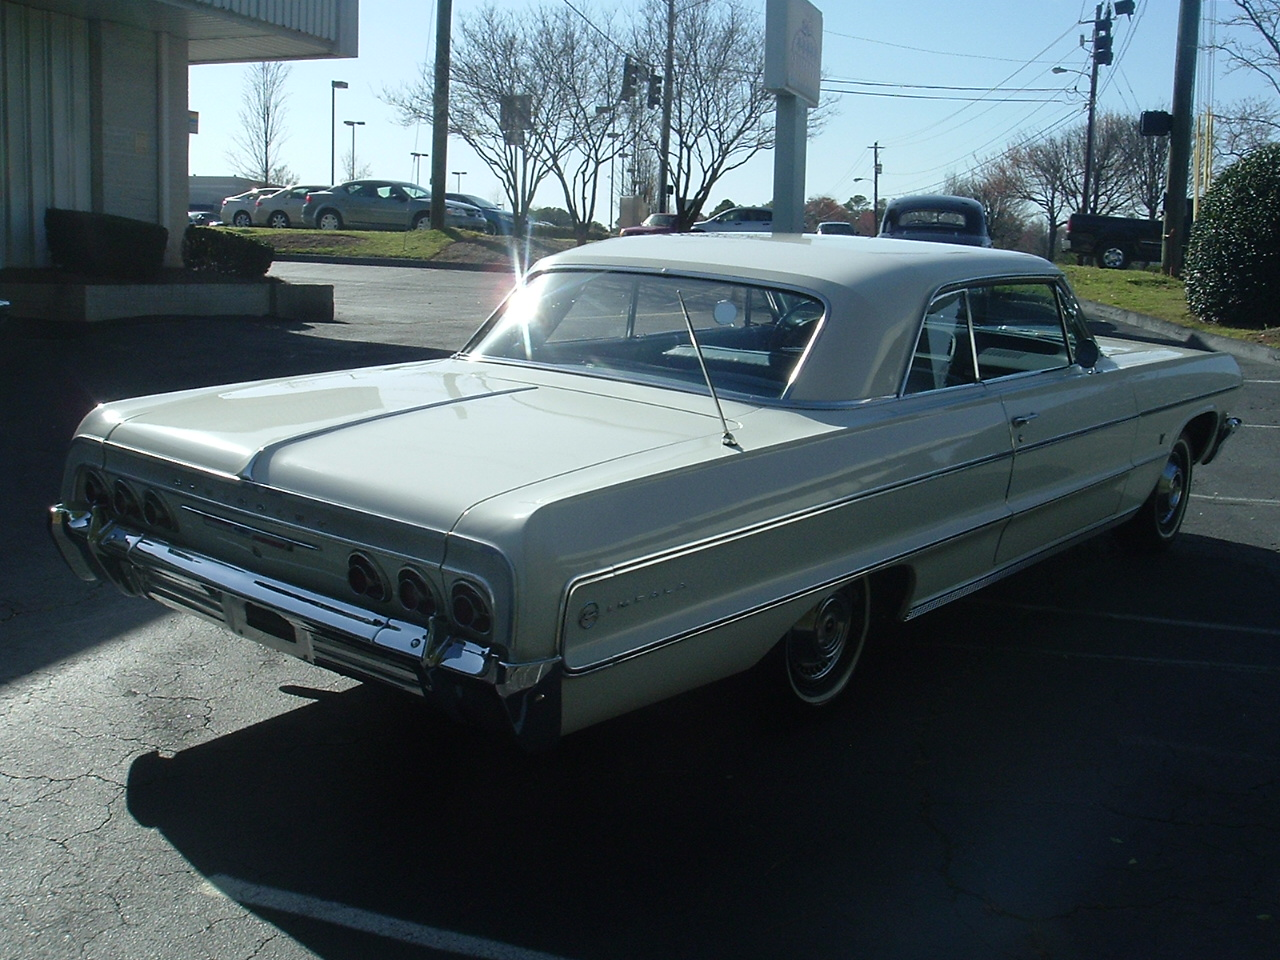 1964 Impala Two Door Hardtop White (5)